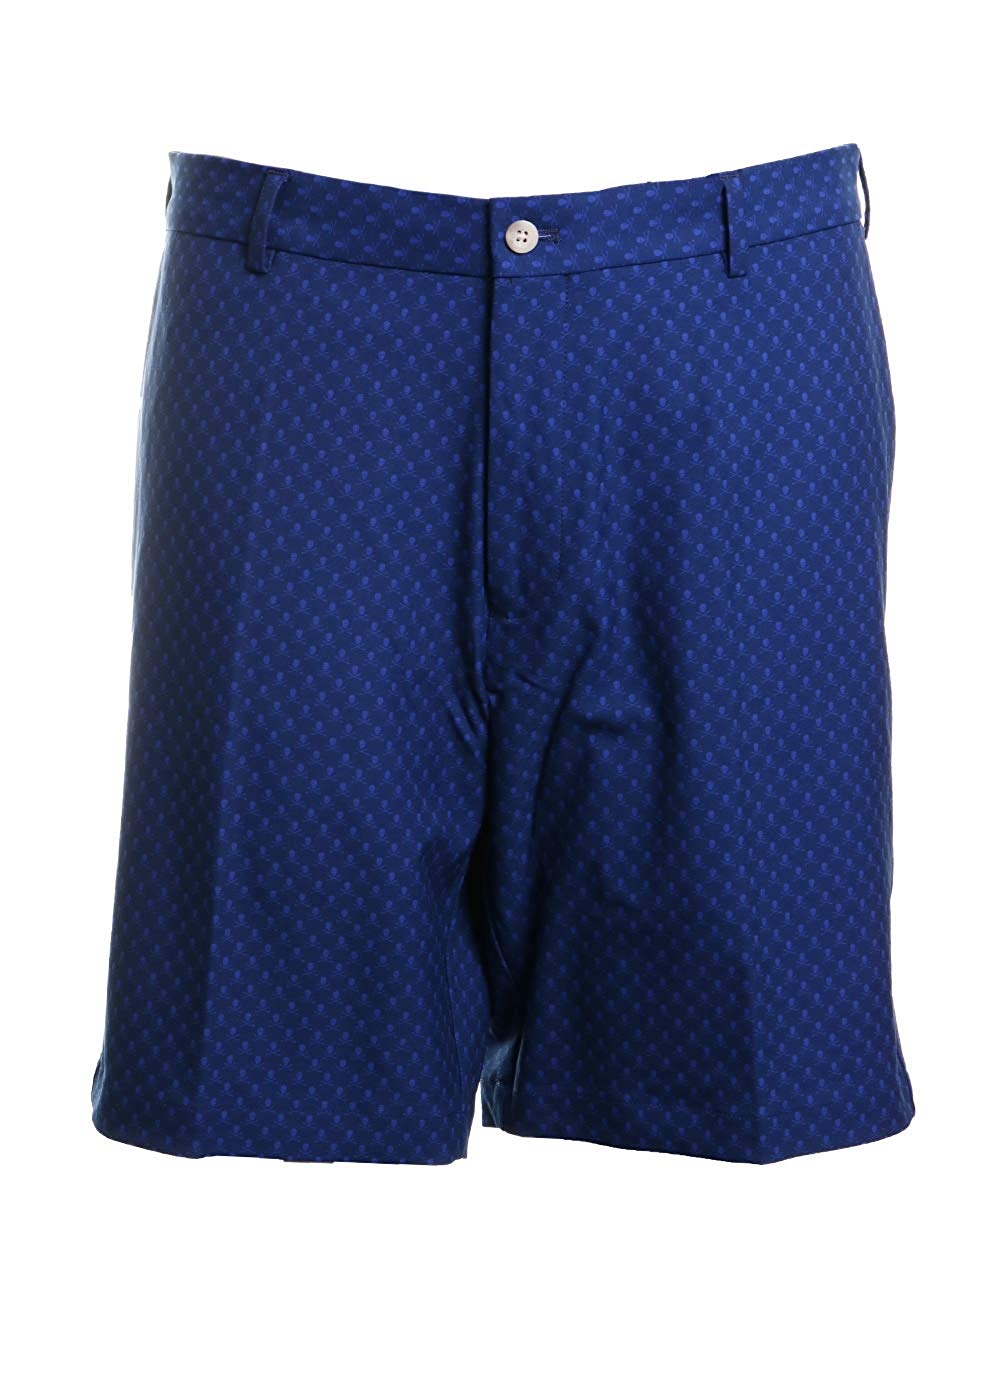 Carrboro Skull & Clubs Shorts